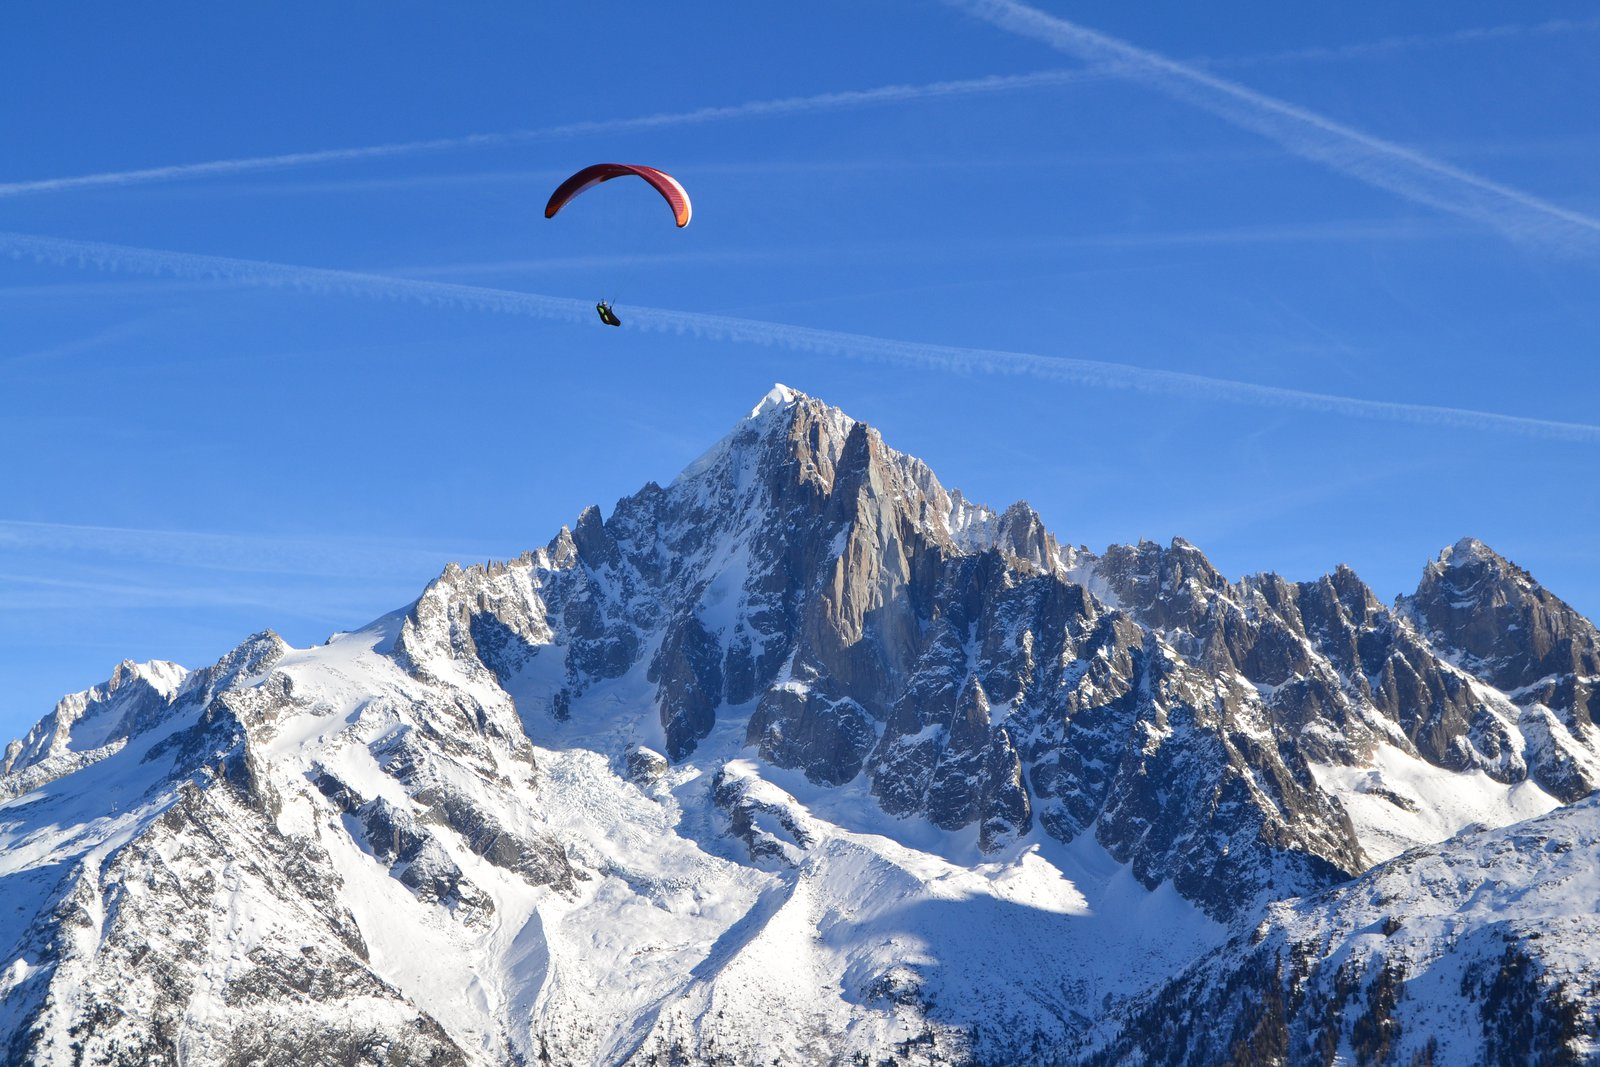 Paraglider soars high above the Chamonix valley